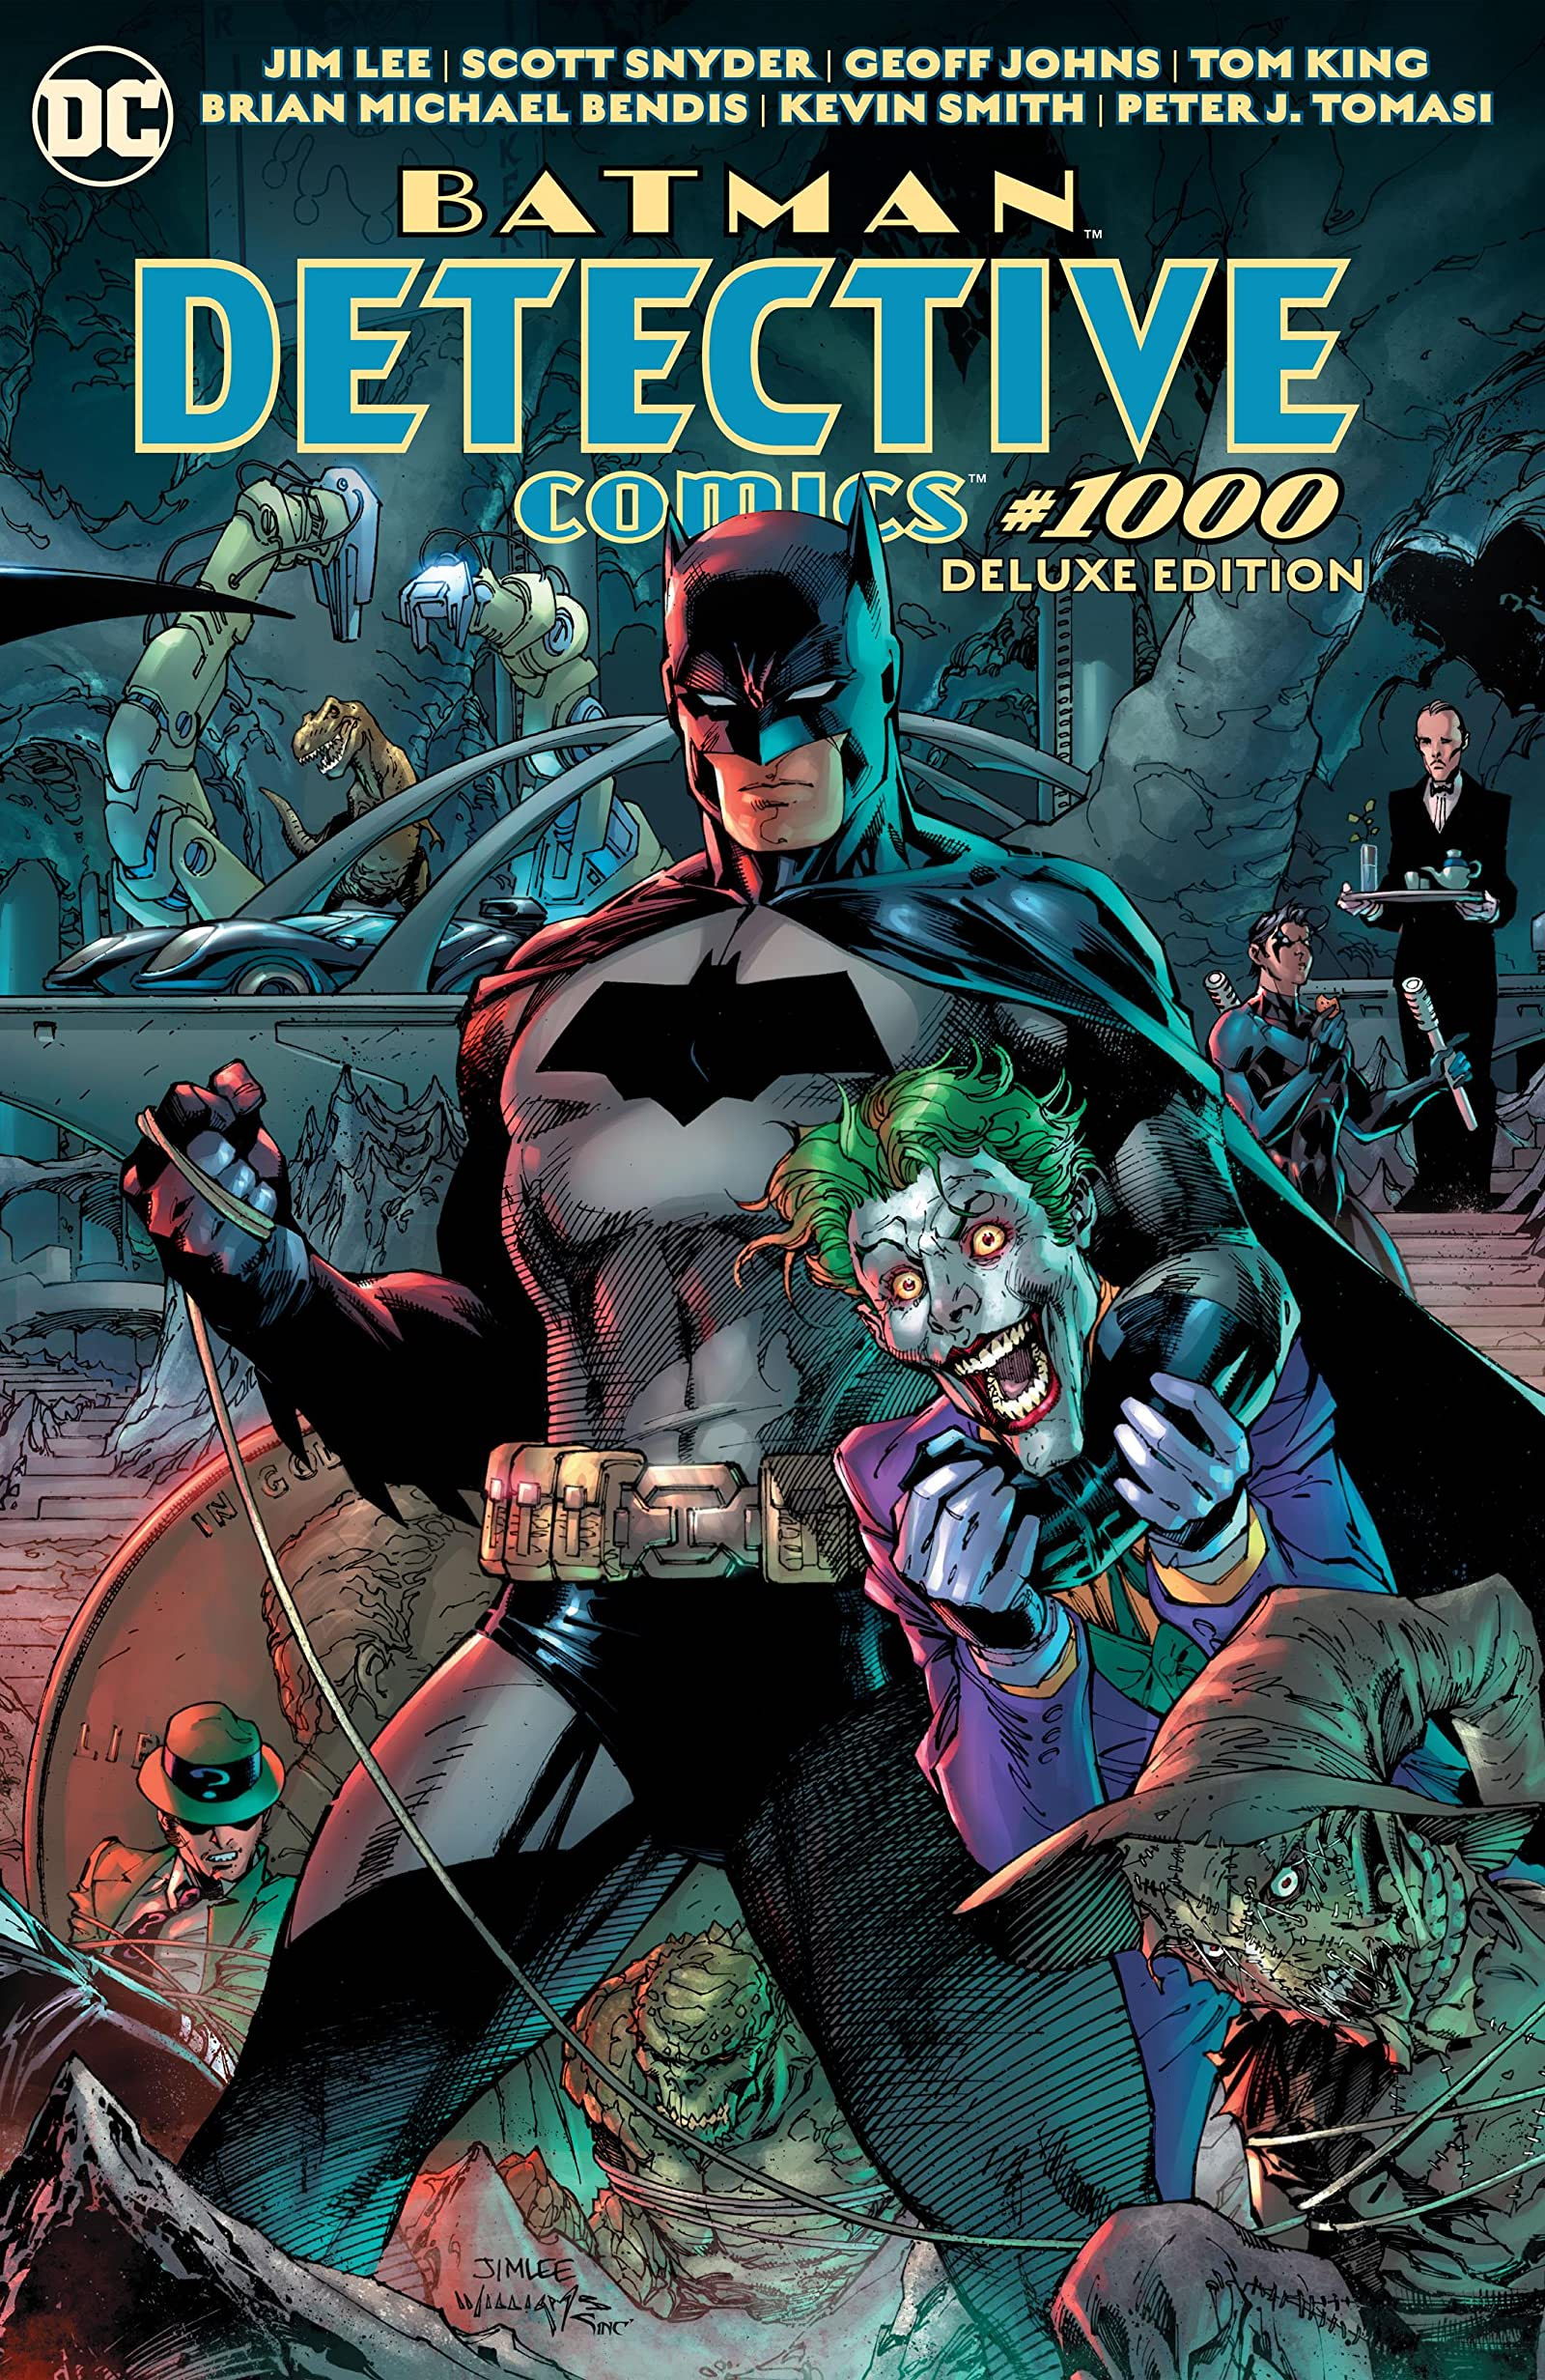 Detective Comics Vol 1 1000: Deluxe Edition